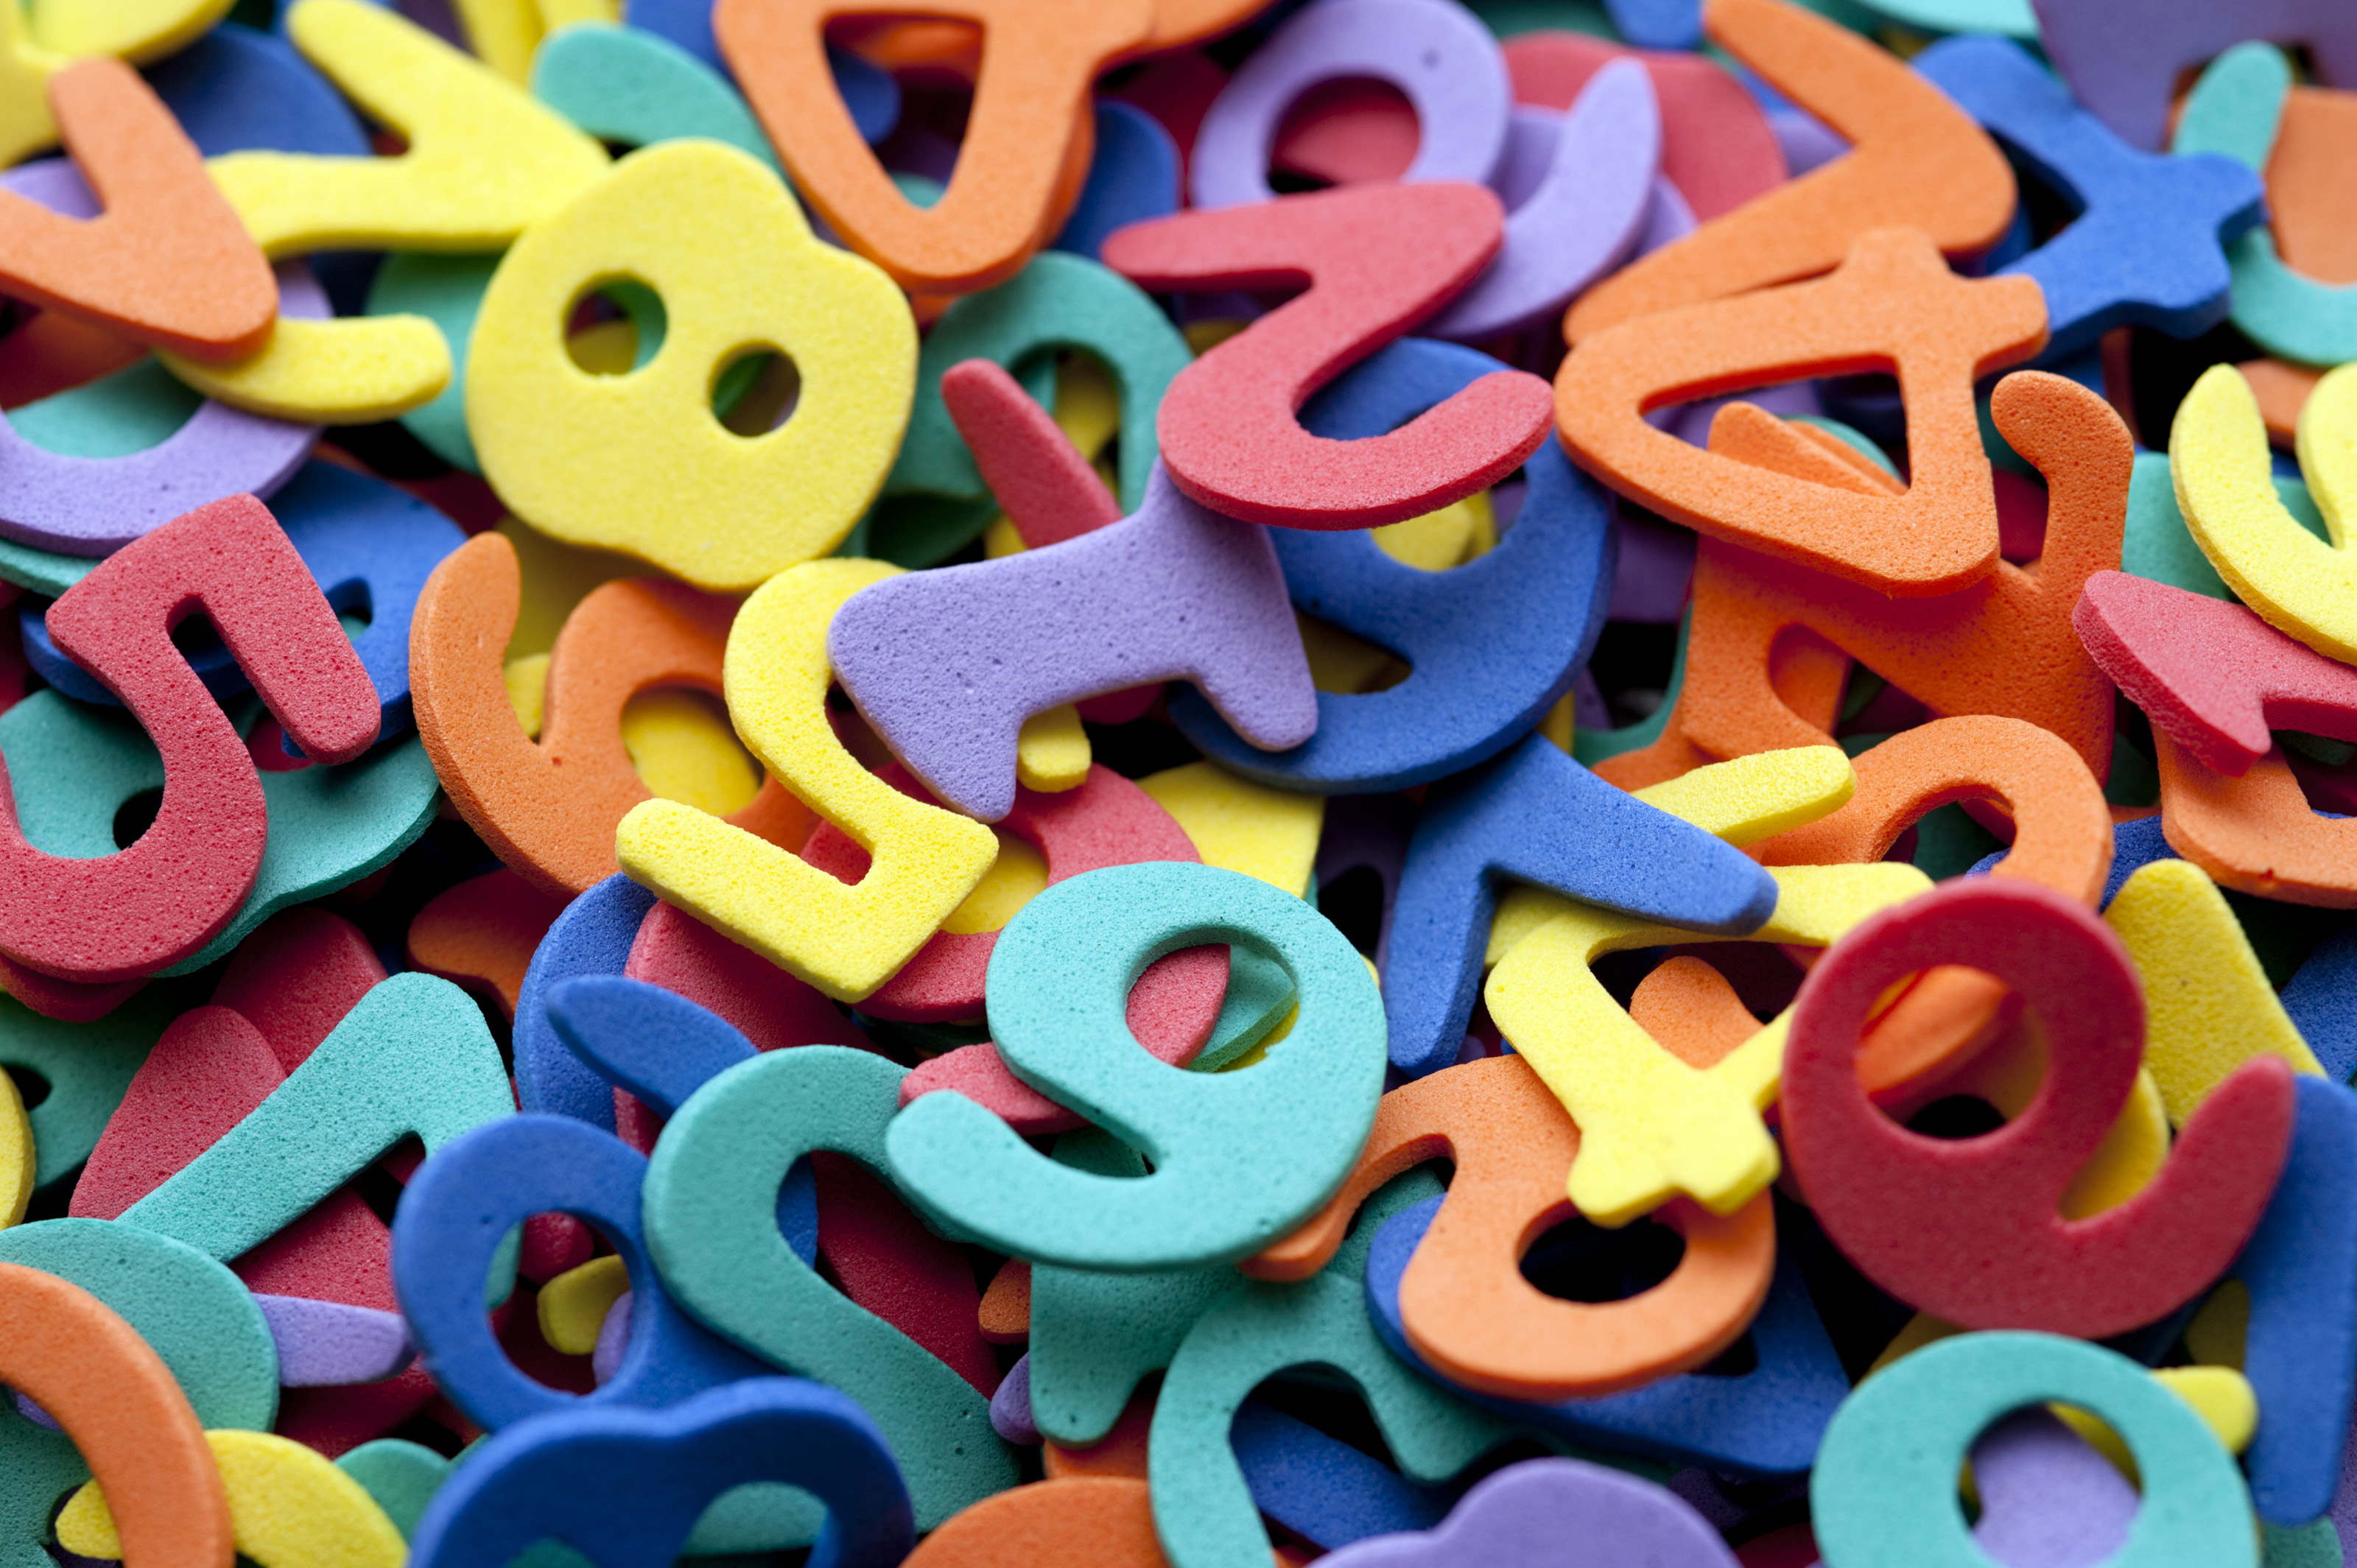 Free stock photo 7018 colourful preschool numbers - Number wallpaper ...